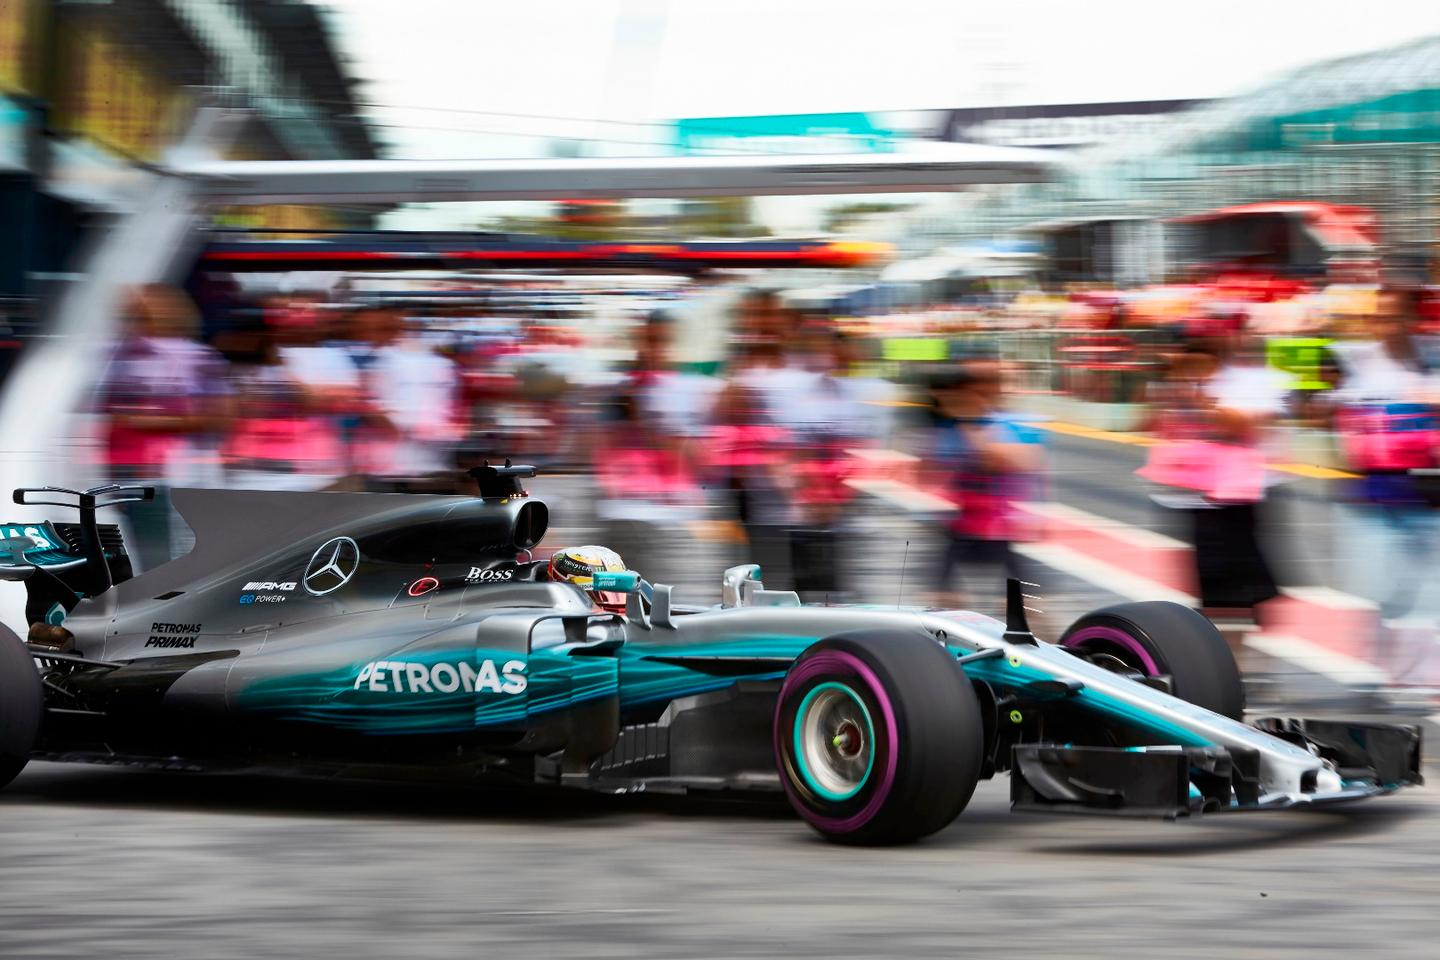 Mercedes has dominated F1 in the last few years